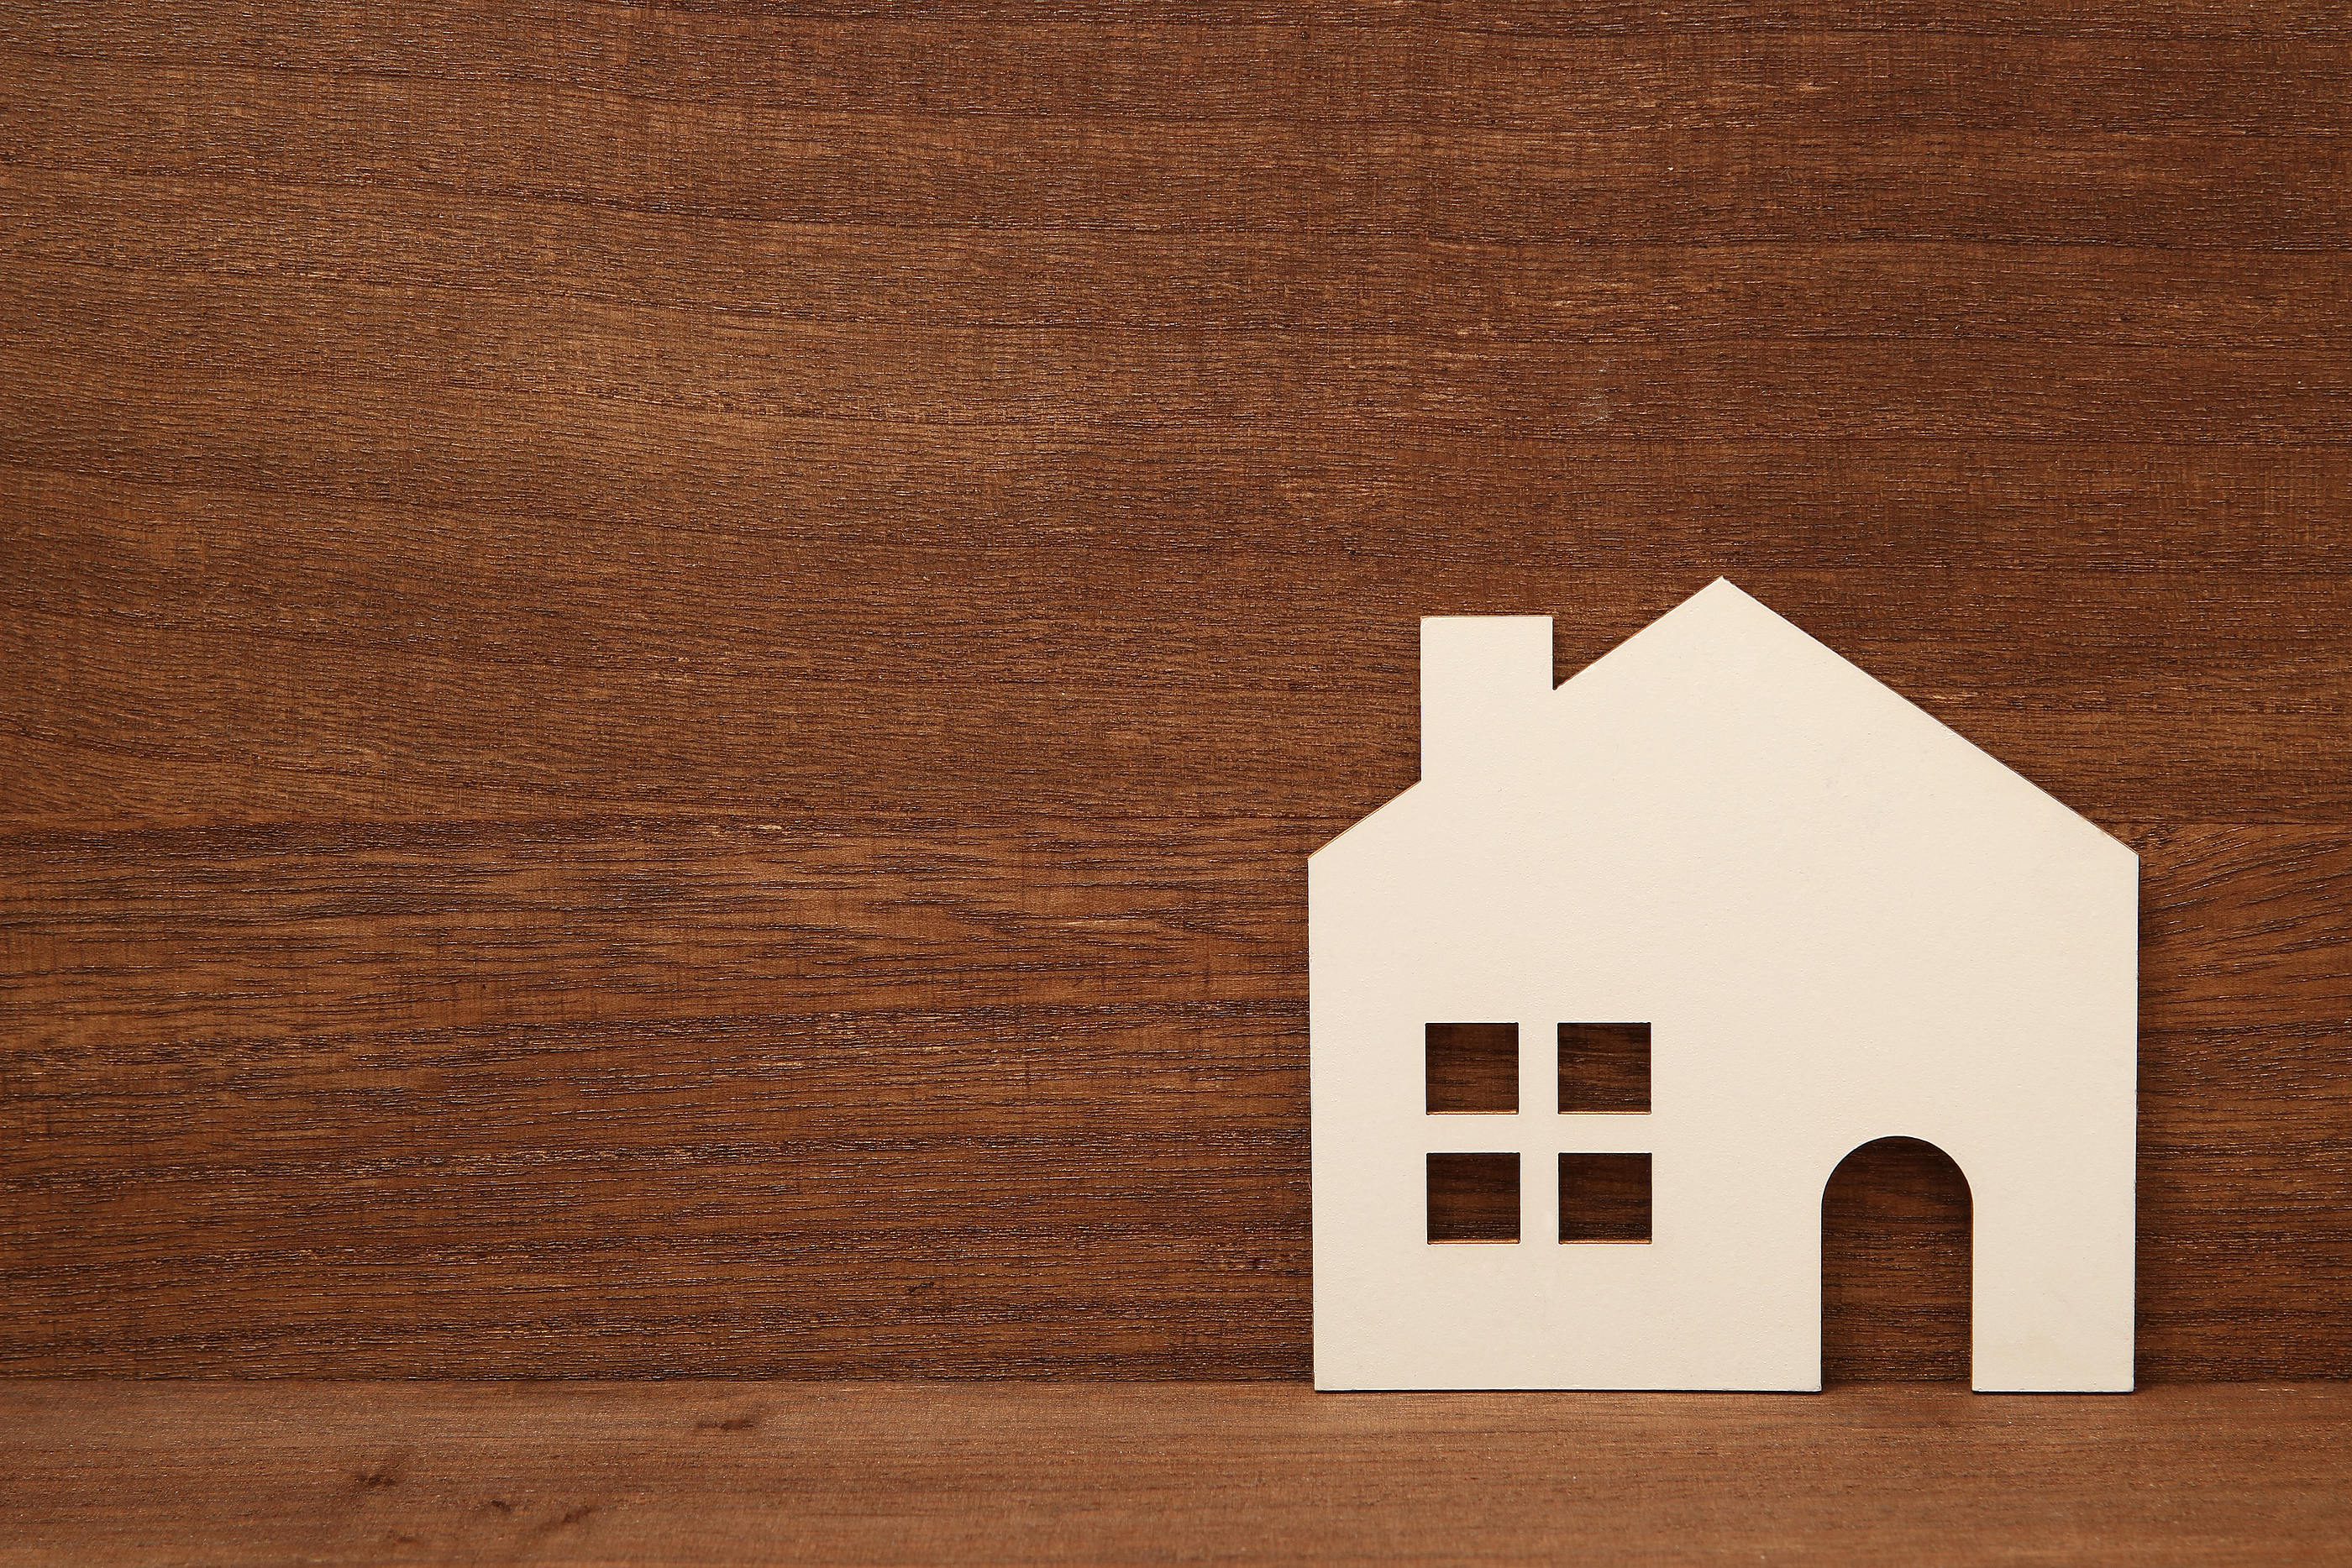 Real Estate Terms to Know When Selling a House